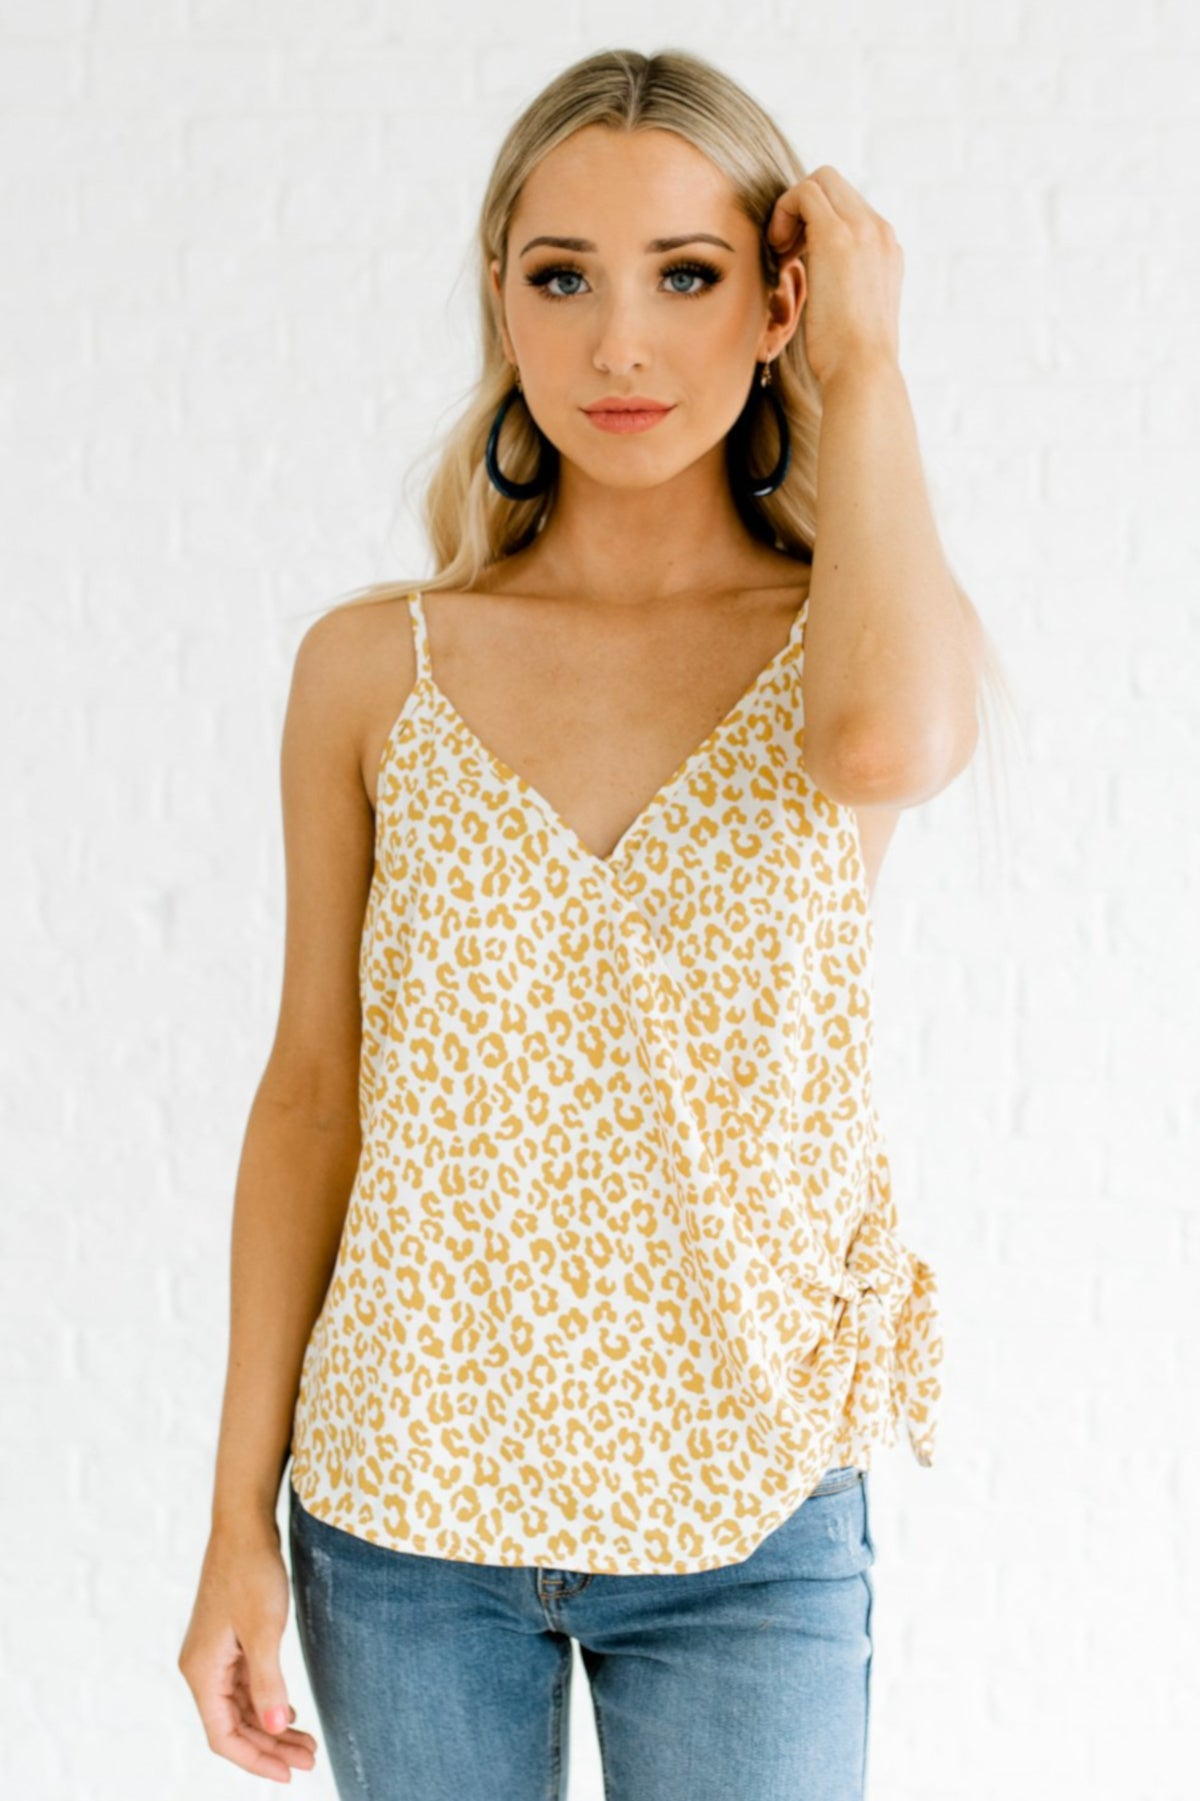 Mustard Yellow and White Leopard Print Pattern Boutique Tanks for Women